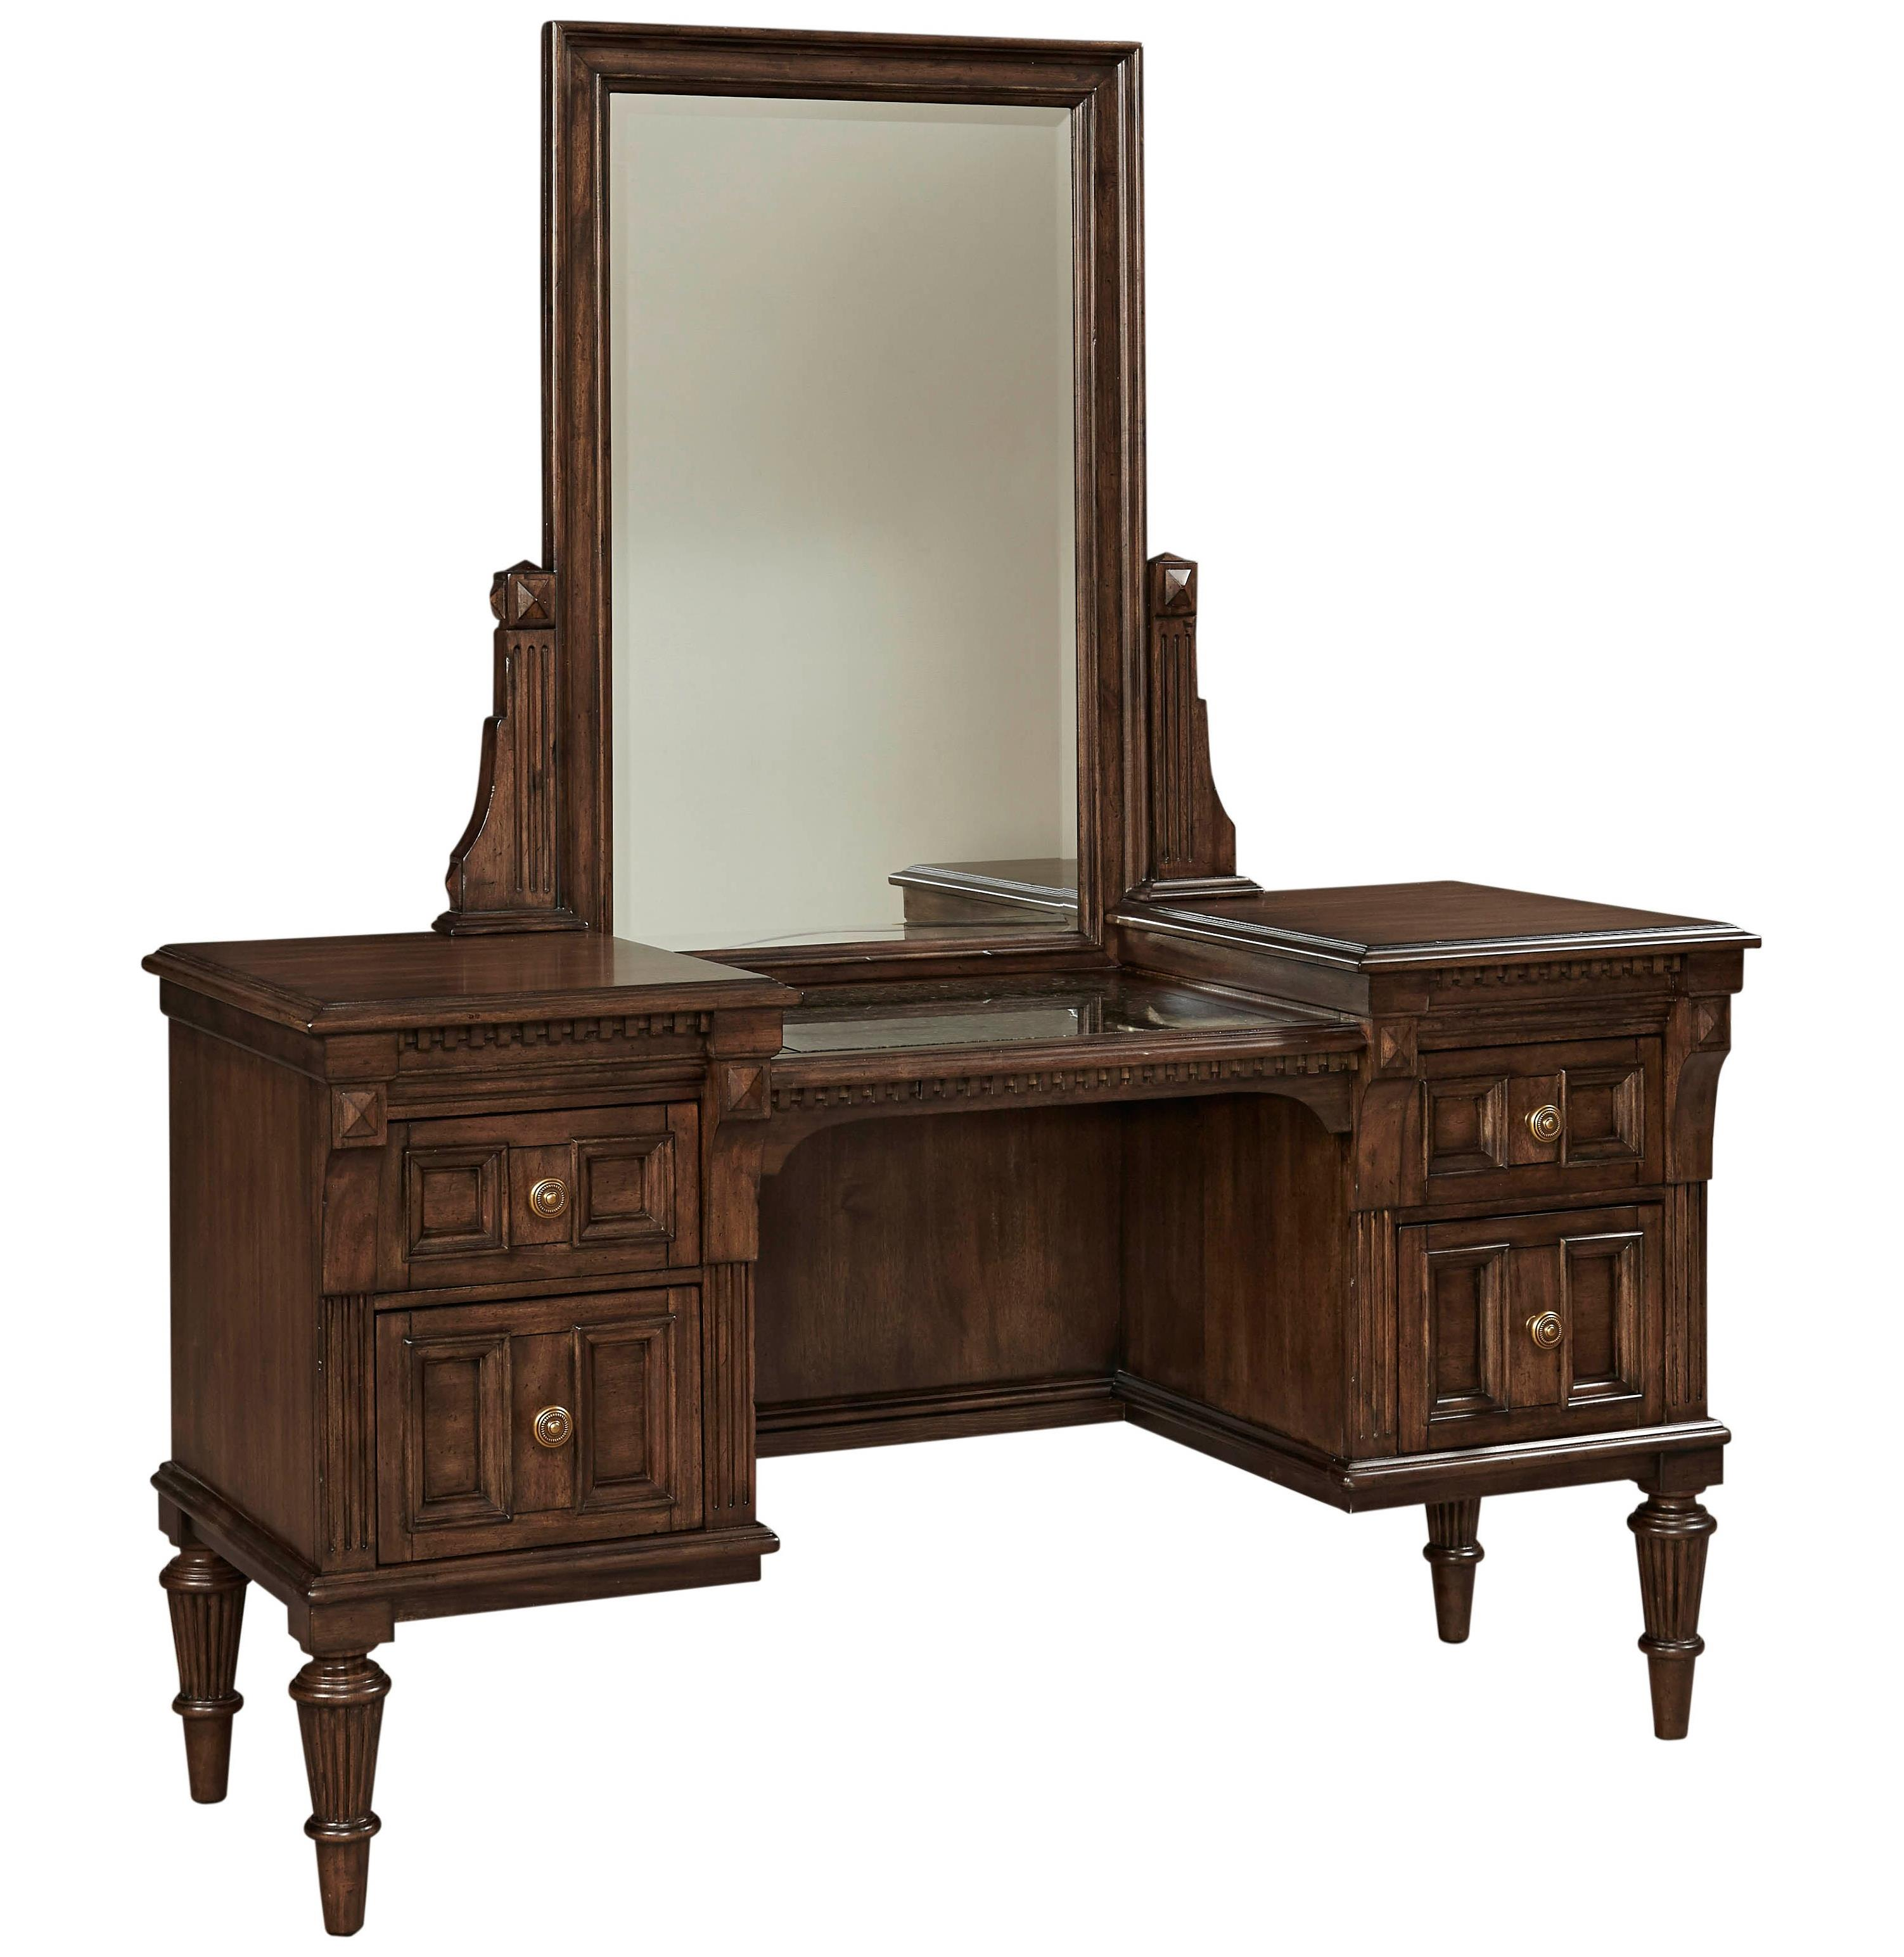 Broyhill Furniture Lyla Vanity and Mirror Set - Item Number: 4912-220+221